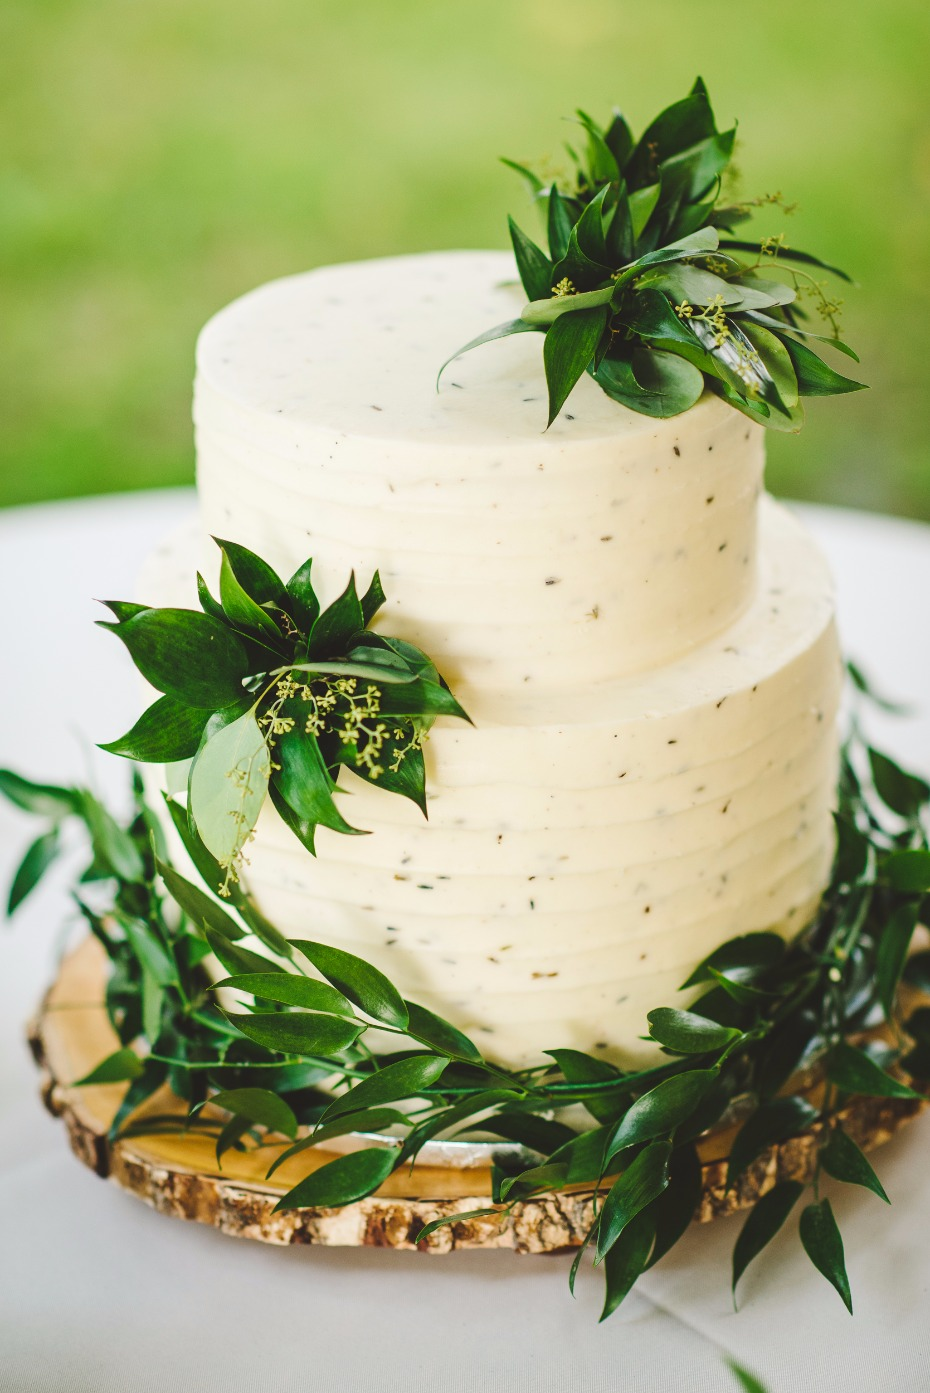 elegant wedding cake with simple greenery accents